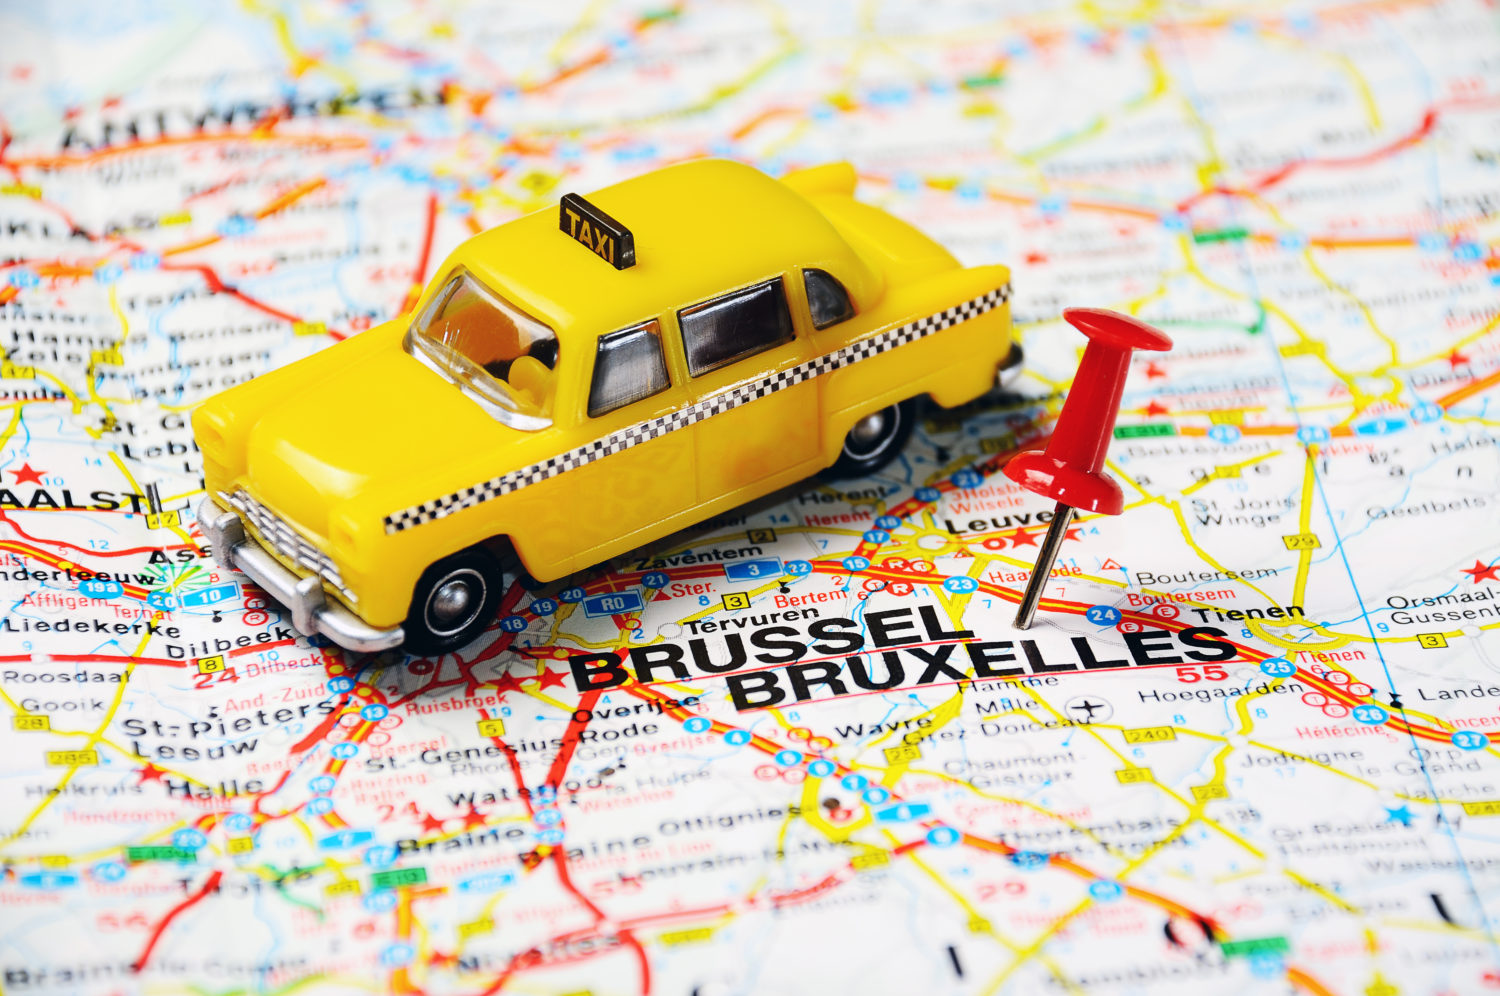 Taxi car miniature on a map of Belgium with a red pin next to Brussels